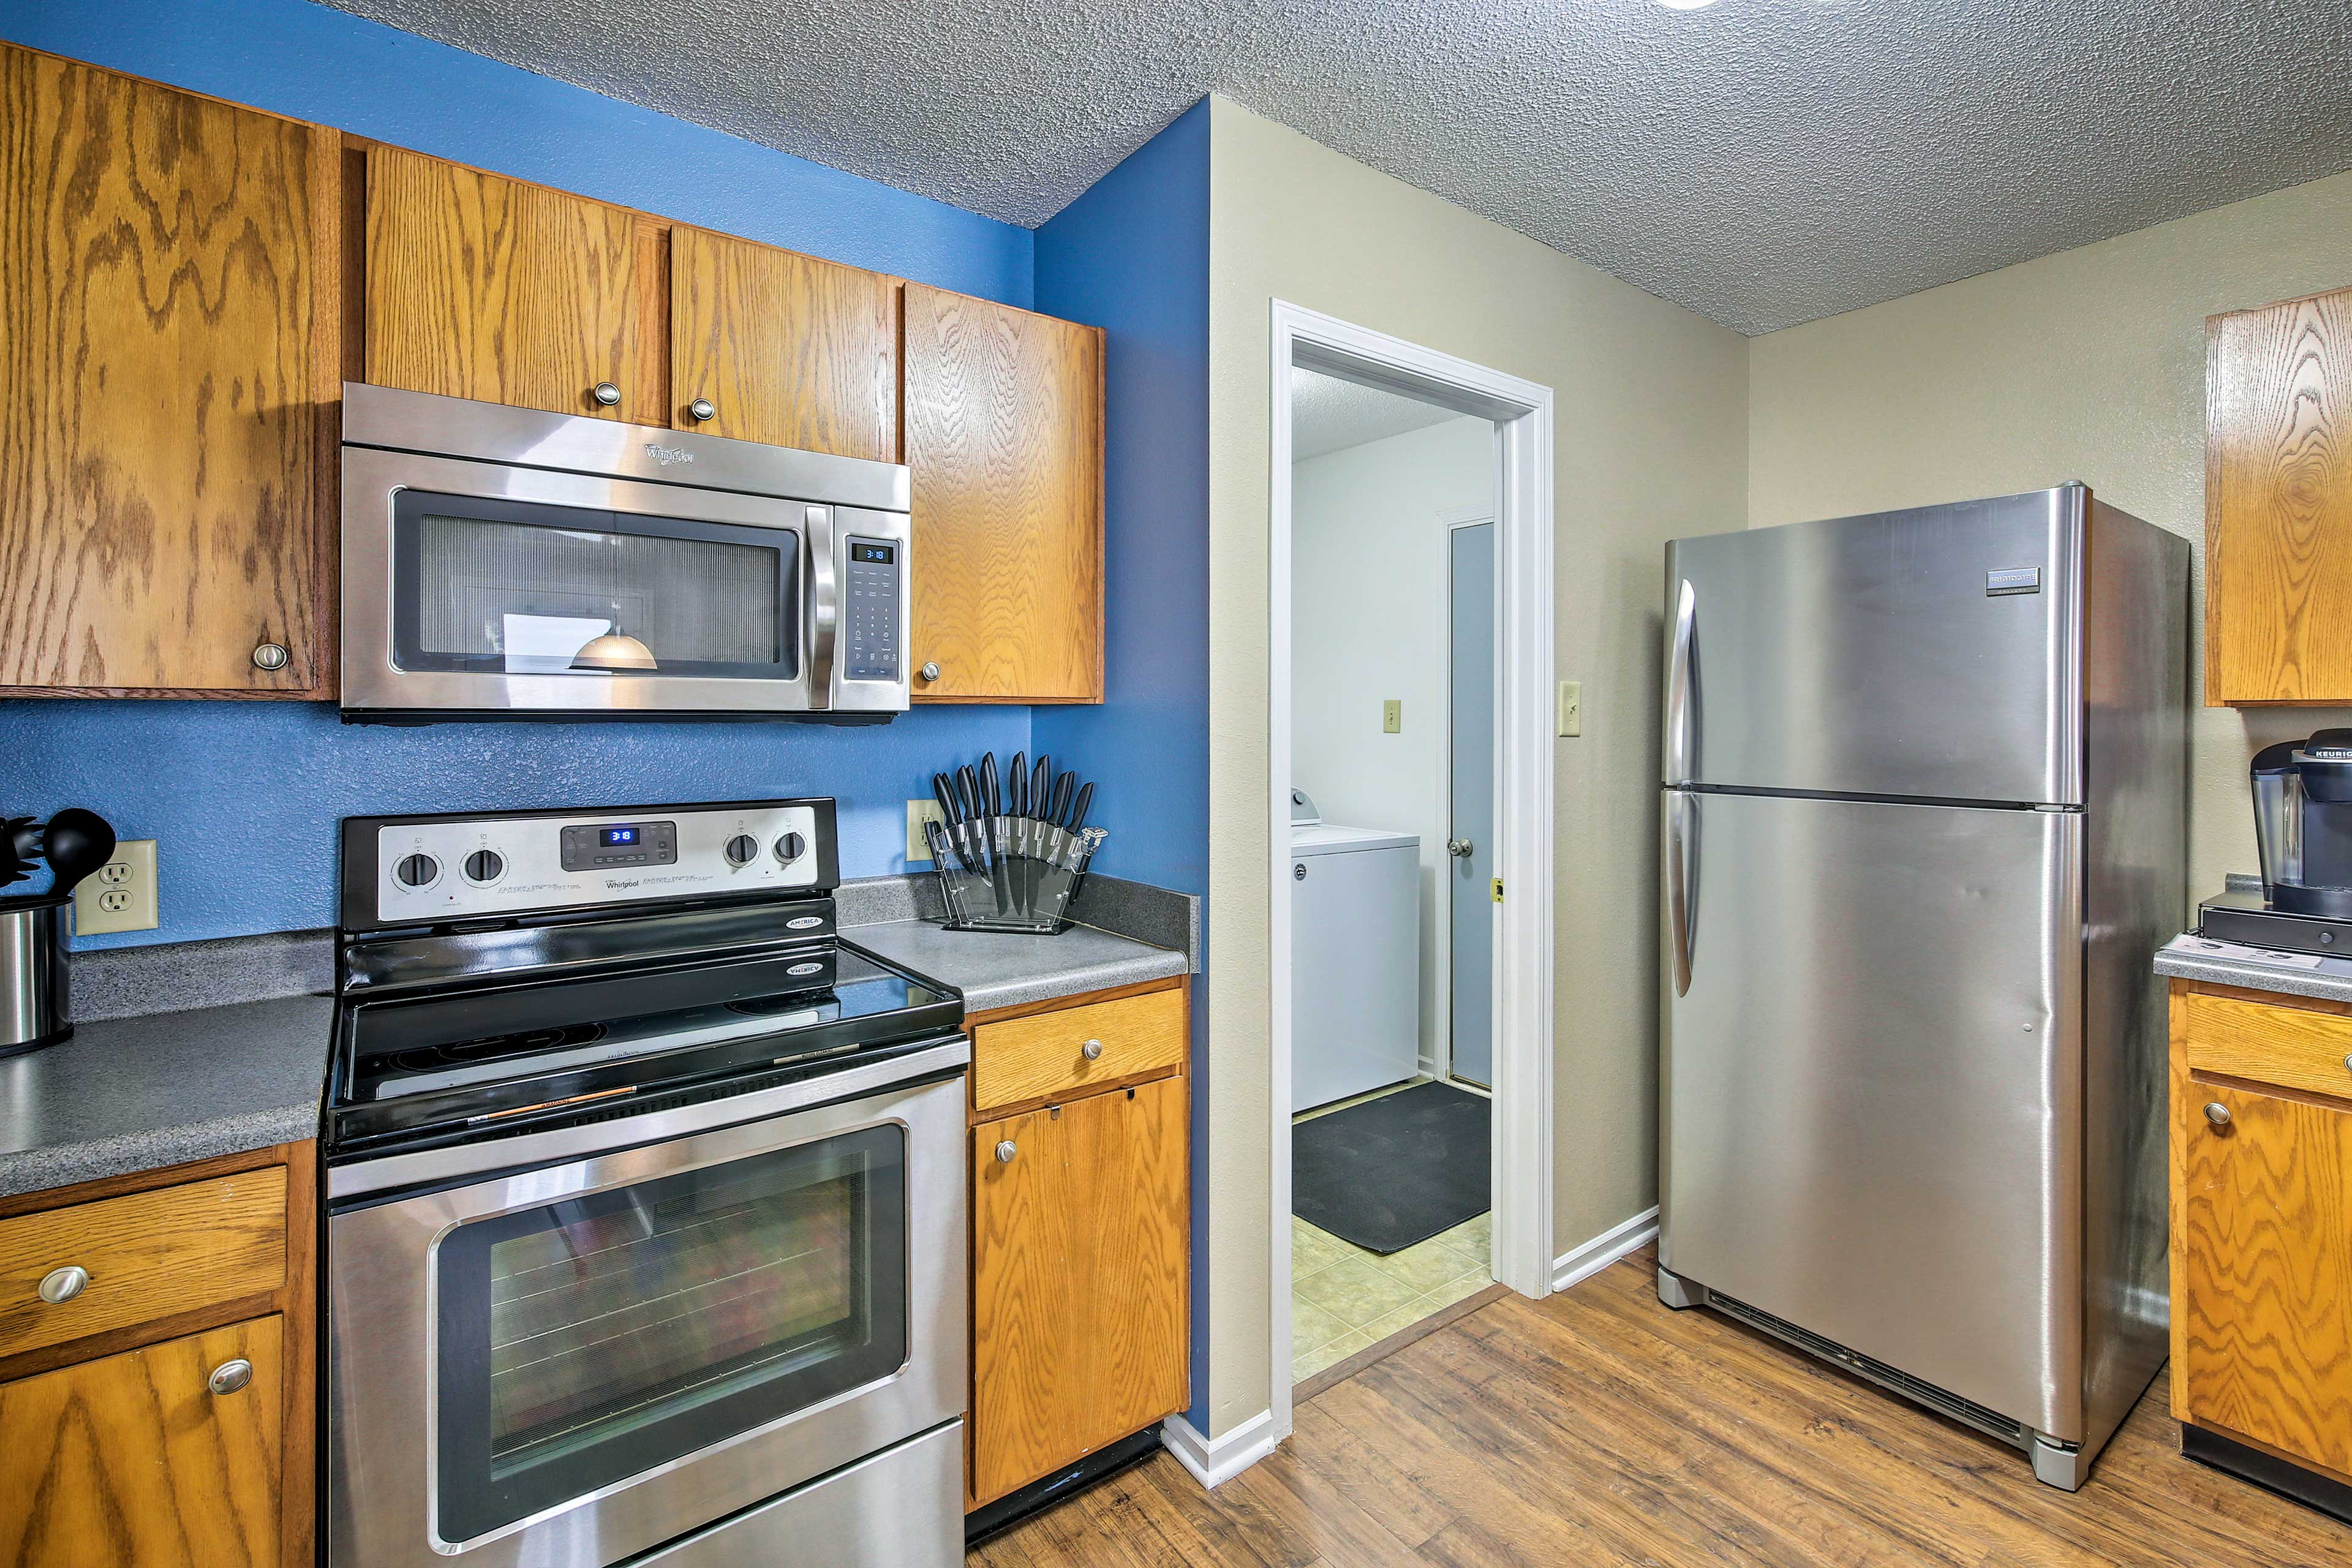 The in-unit laundry machines are located next to the kitchen.